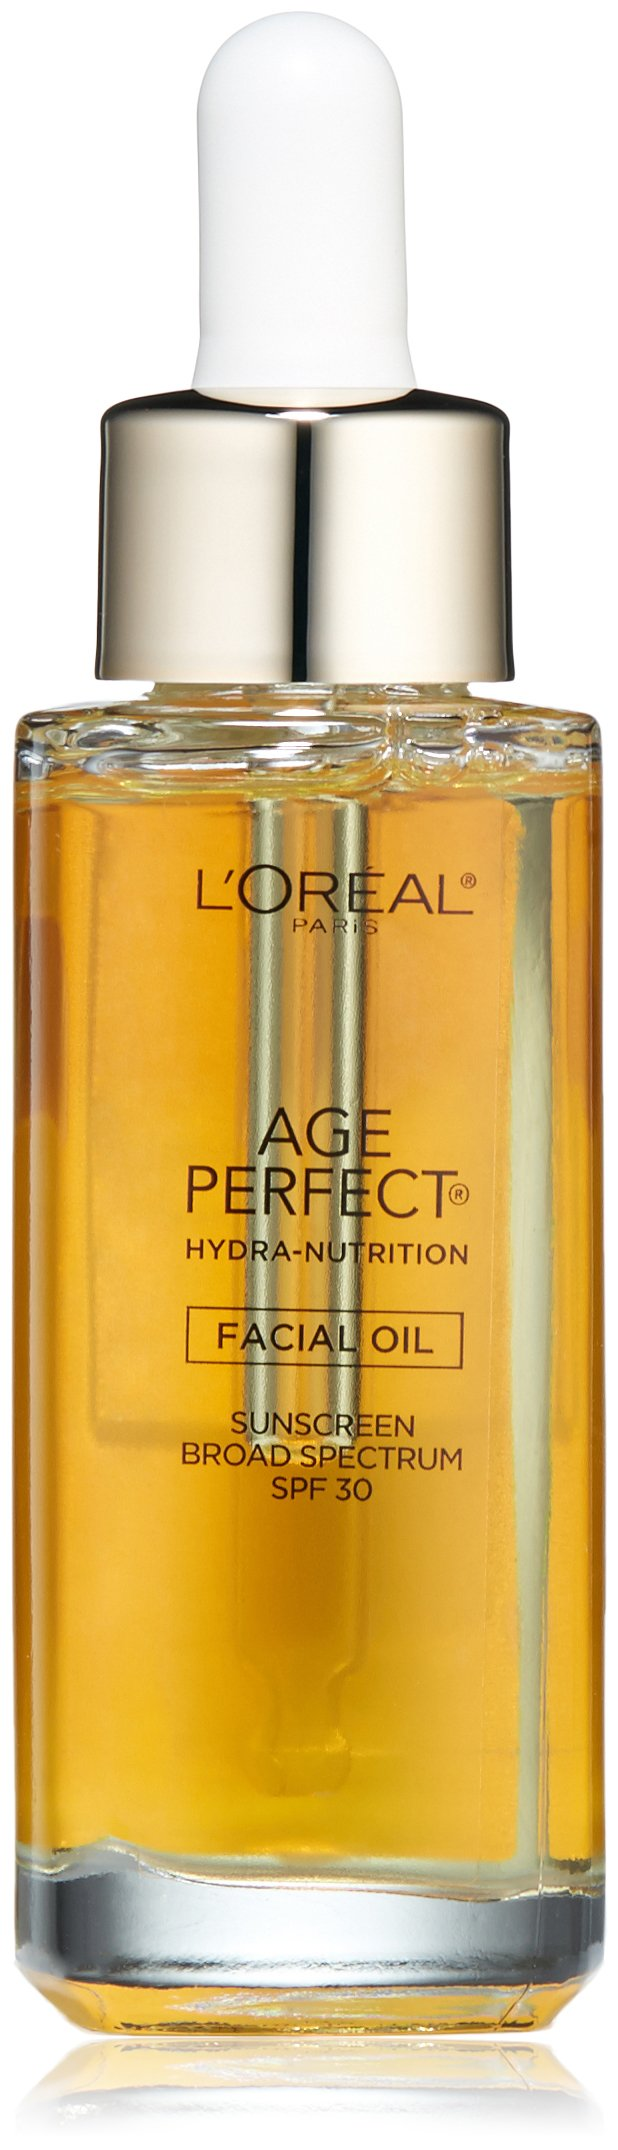 L'Oréal Paris Age Perfect Hydra-Nutrition SPF 30 Facial Oil, 1 fl. oz. by L'Oreal Paris